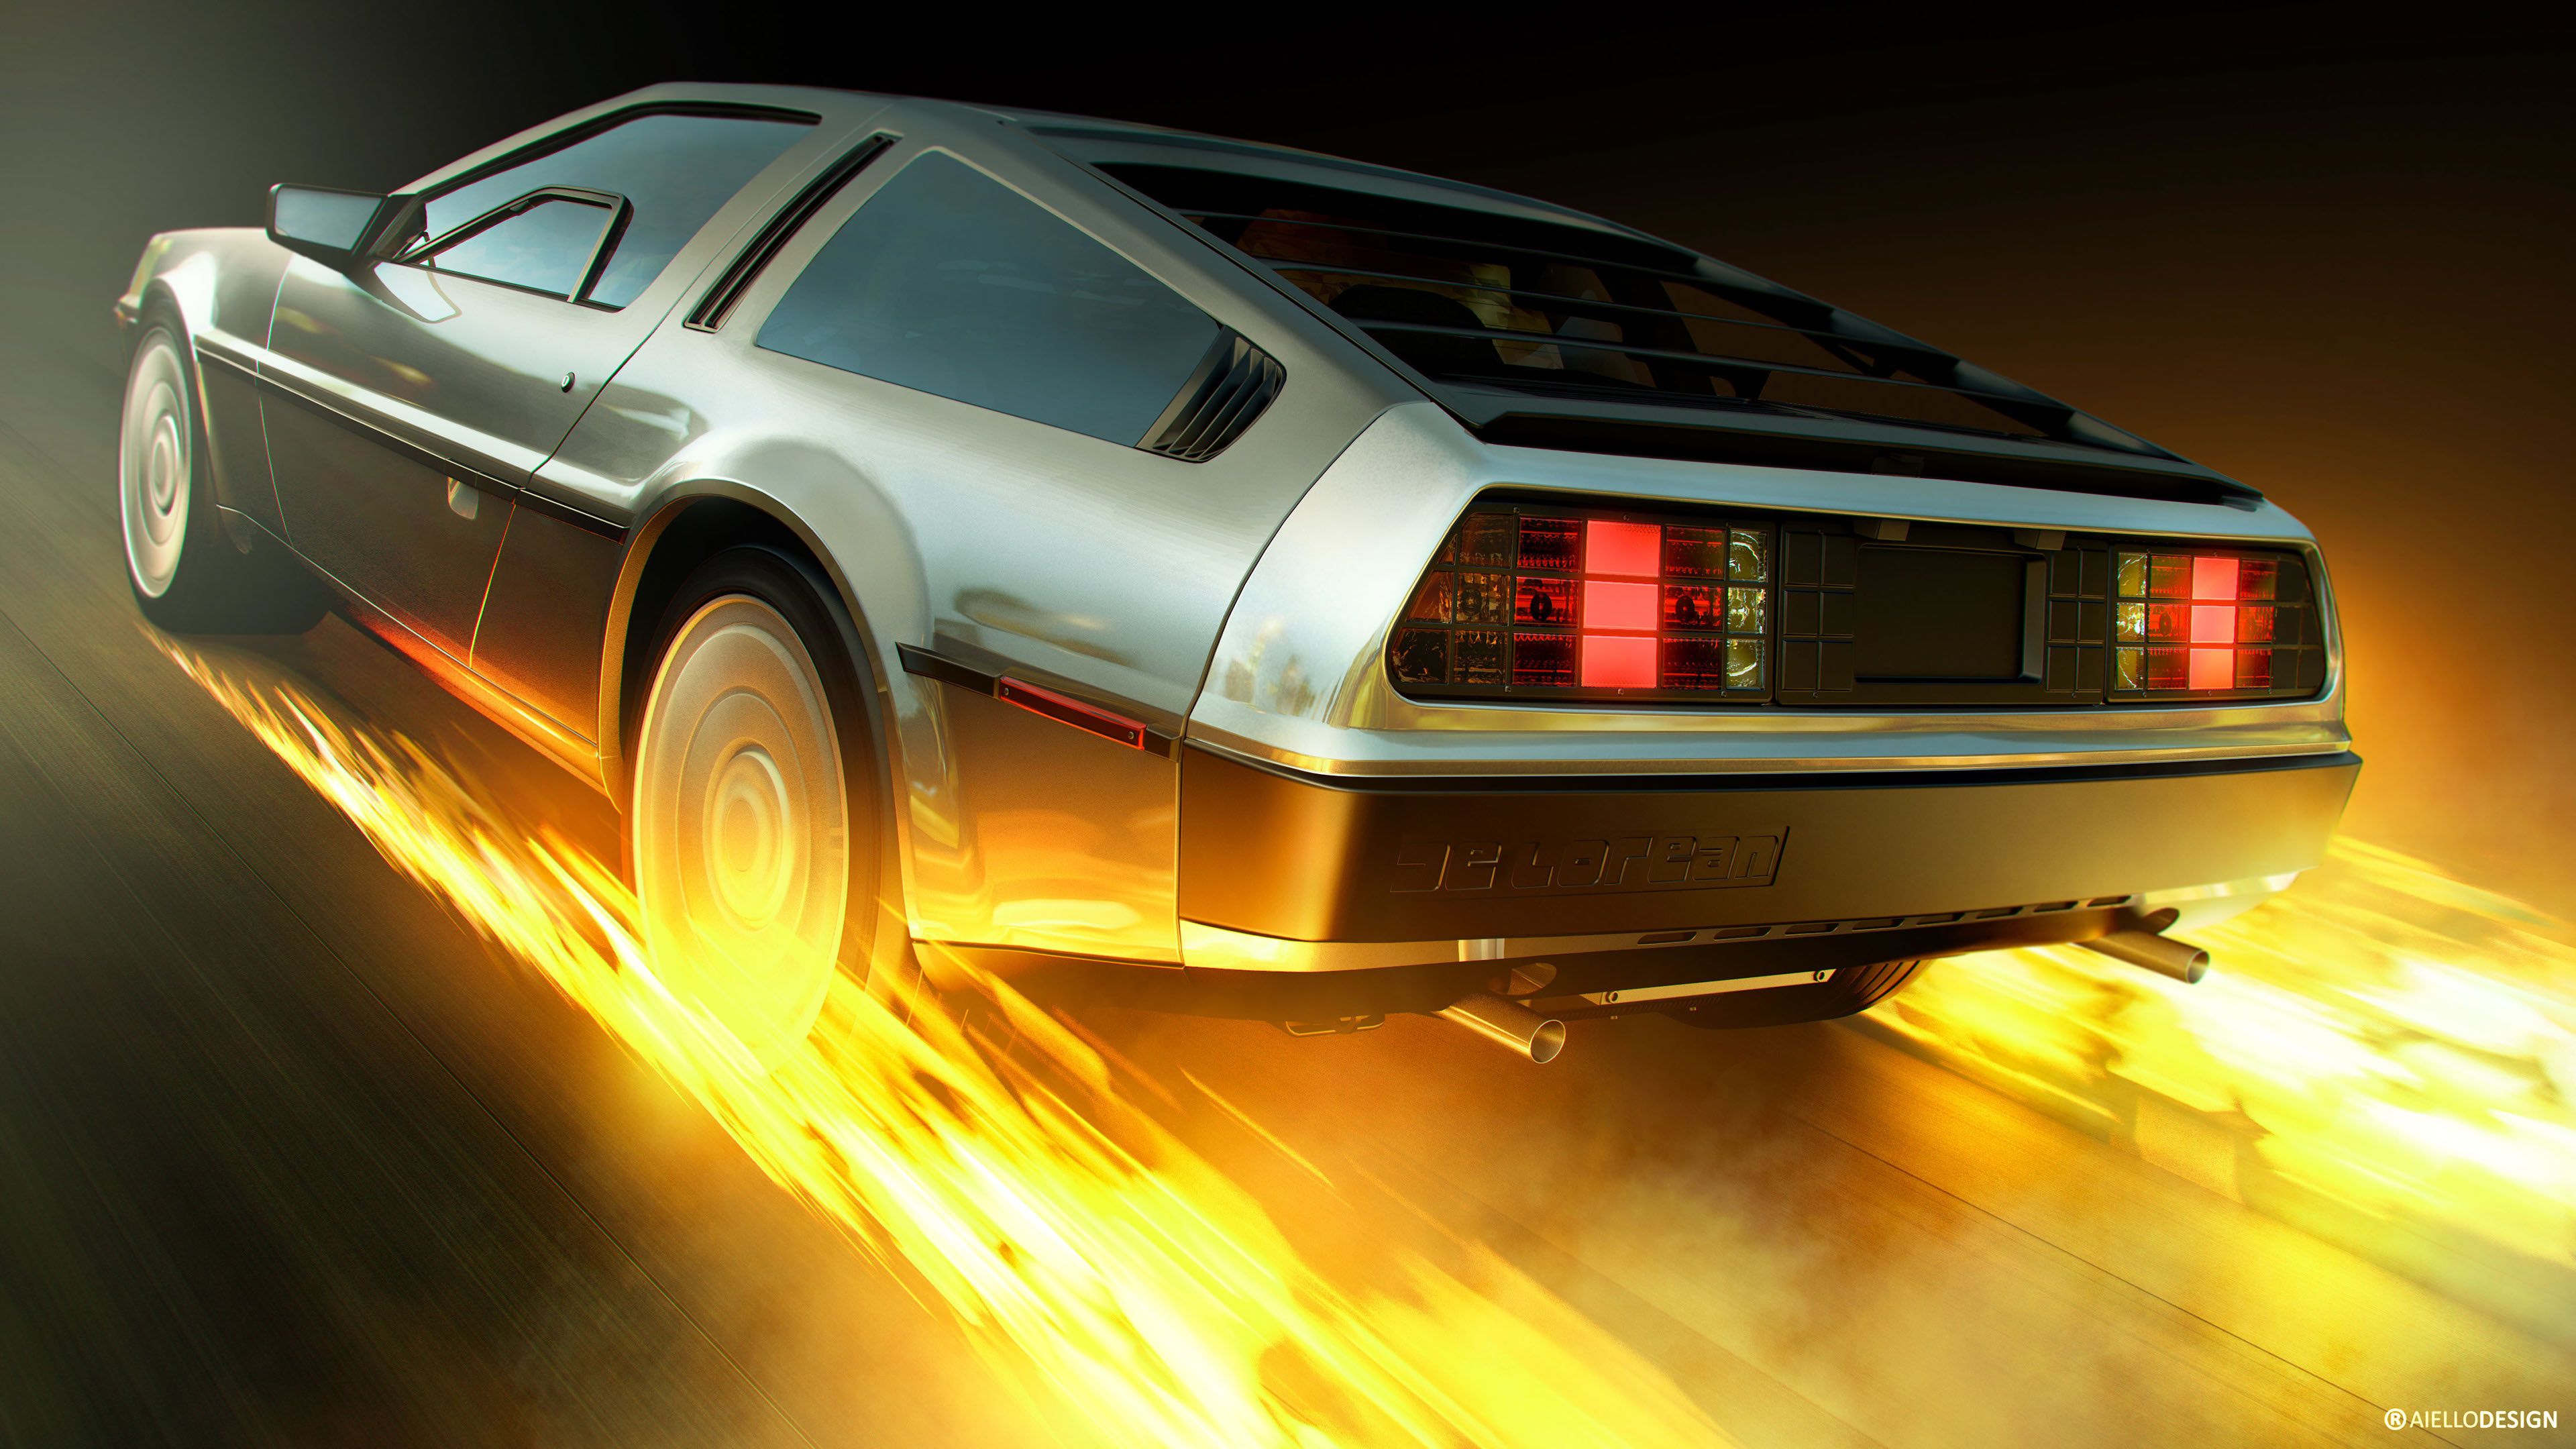 Jaguar Iphone Wallpaper Back To The Future Delorean 4k Wallpaper Hd Car